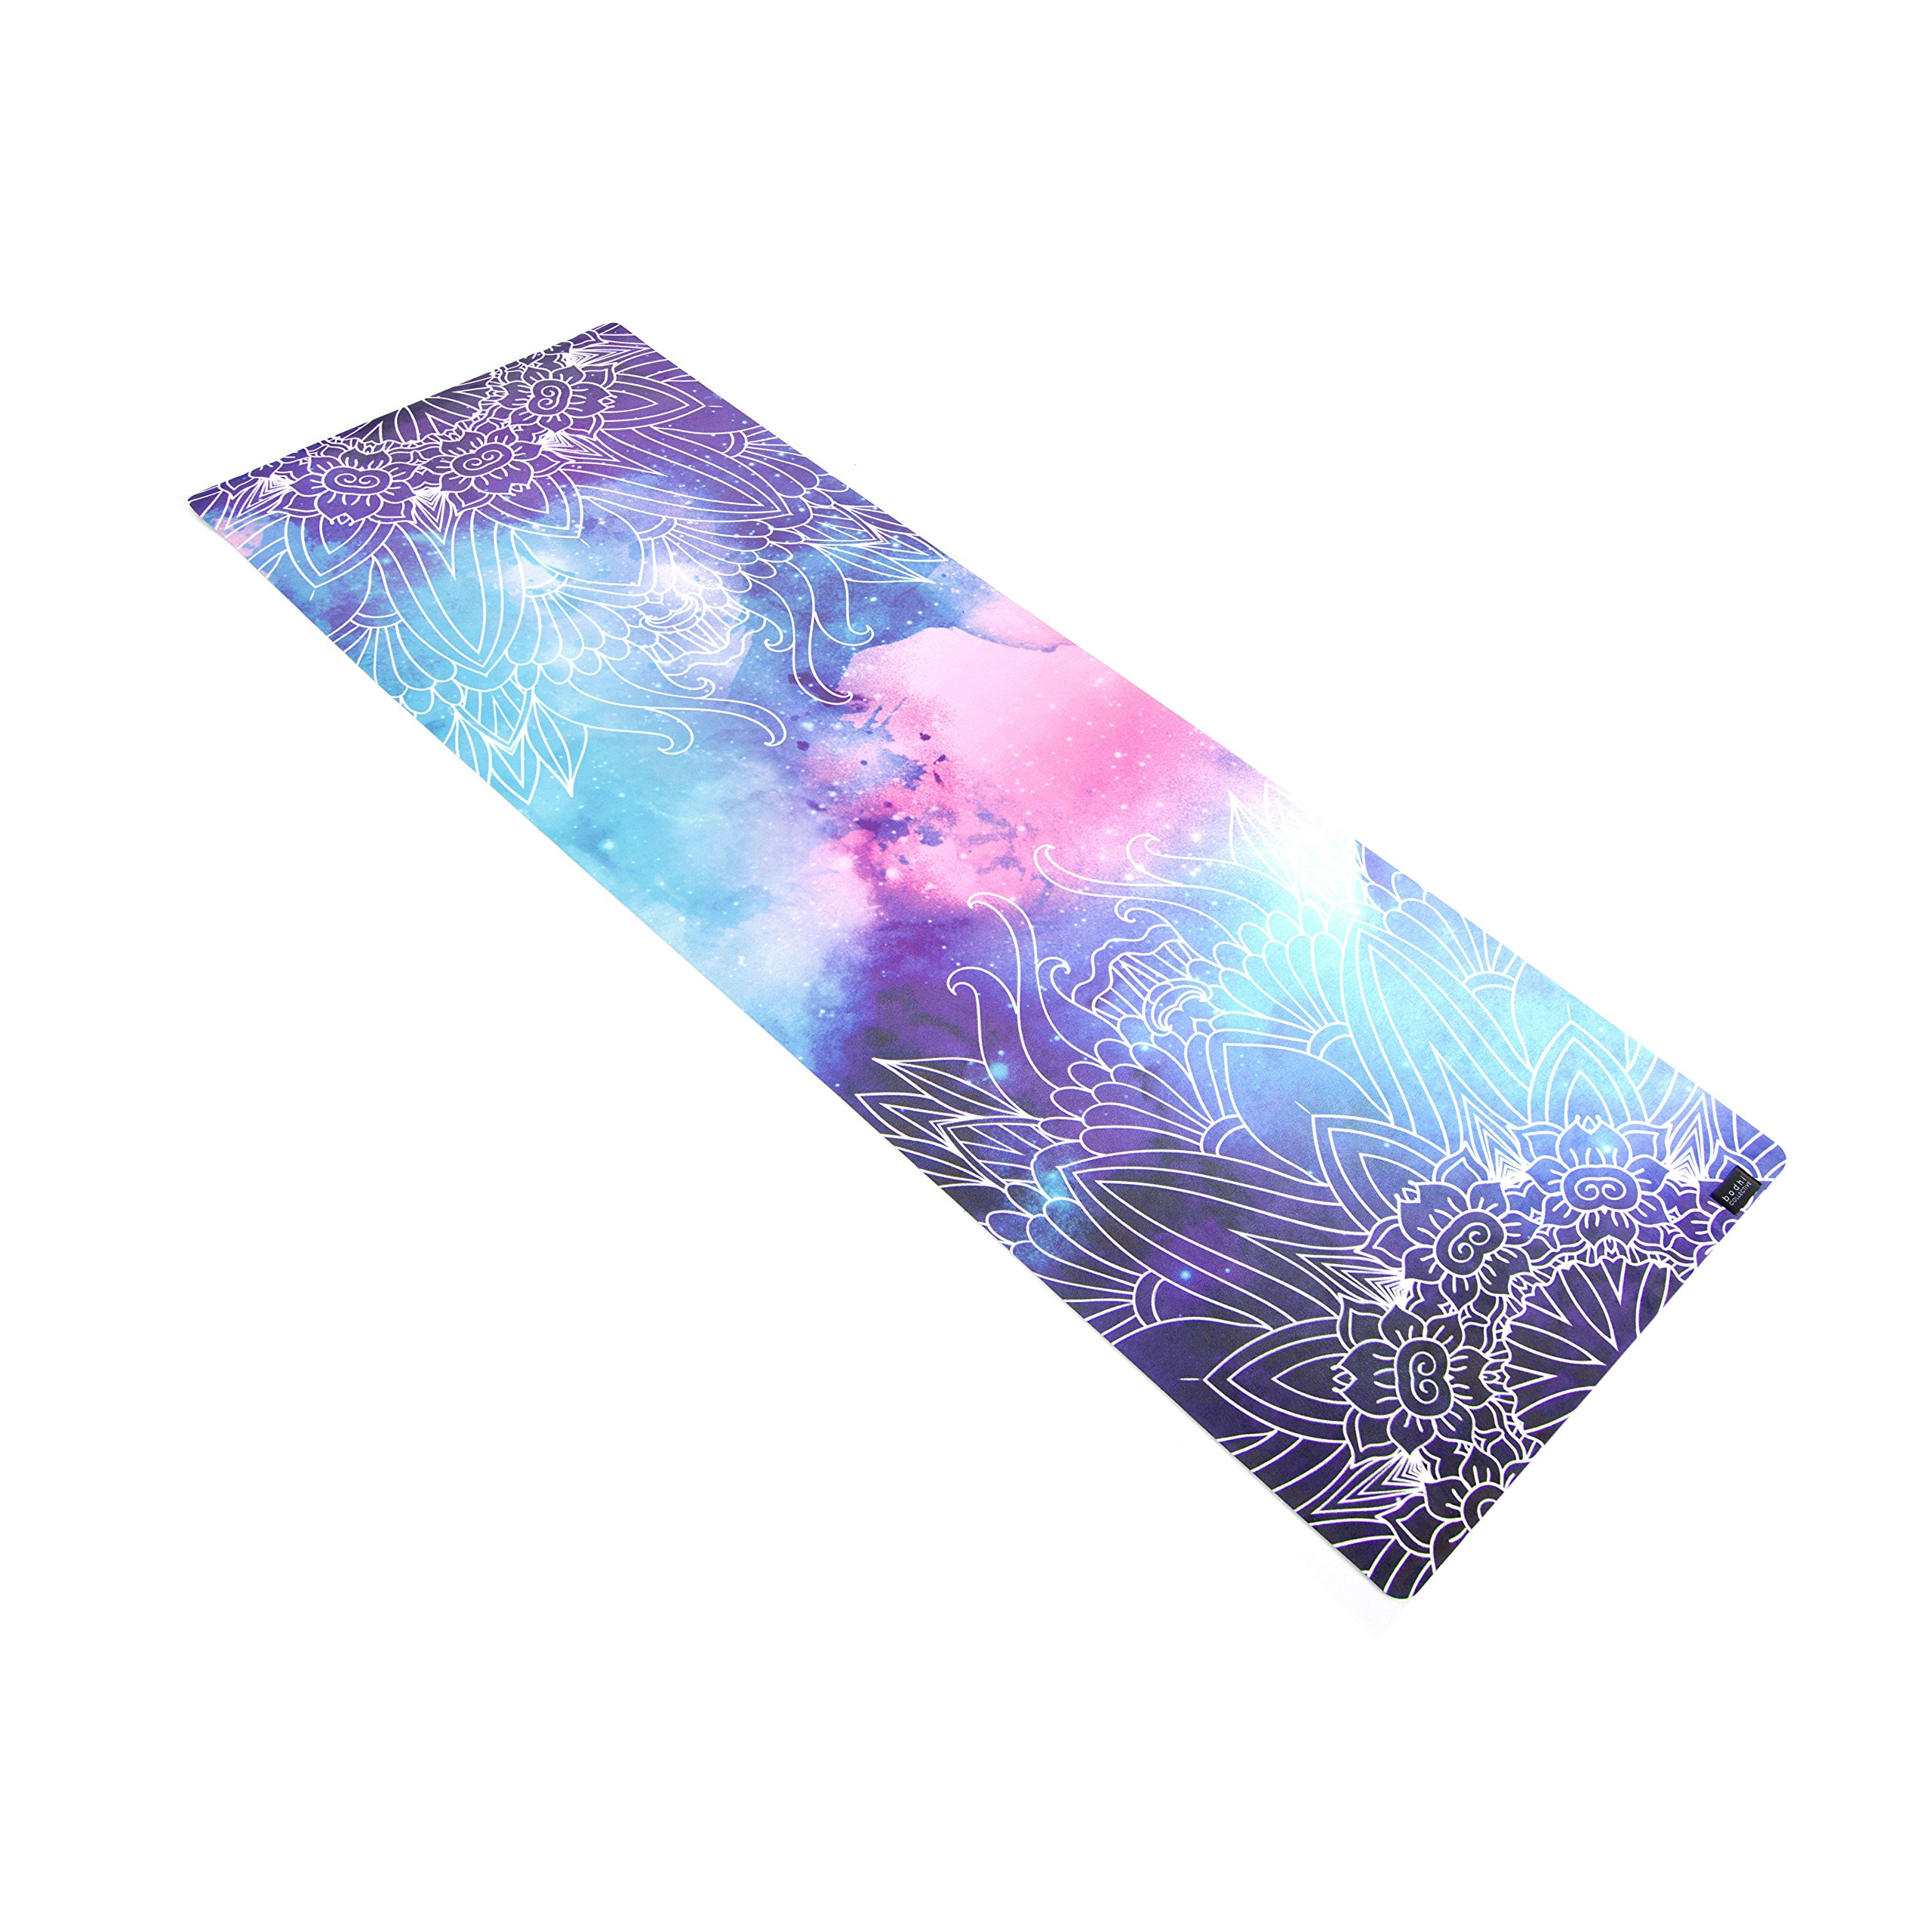 Bodhi Collective MERAKI Luxe Printed Yoga Mat   Premium Eco Friendly Natural Rubber & Soft Suede by Bodhi Collective (Image #2)